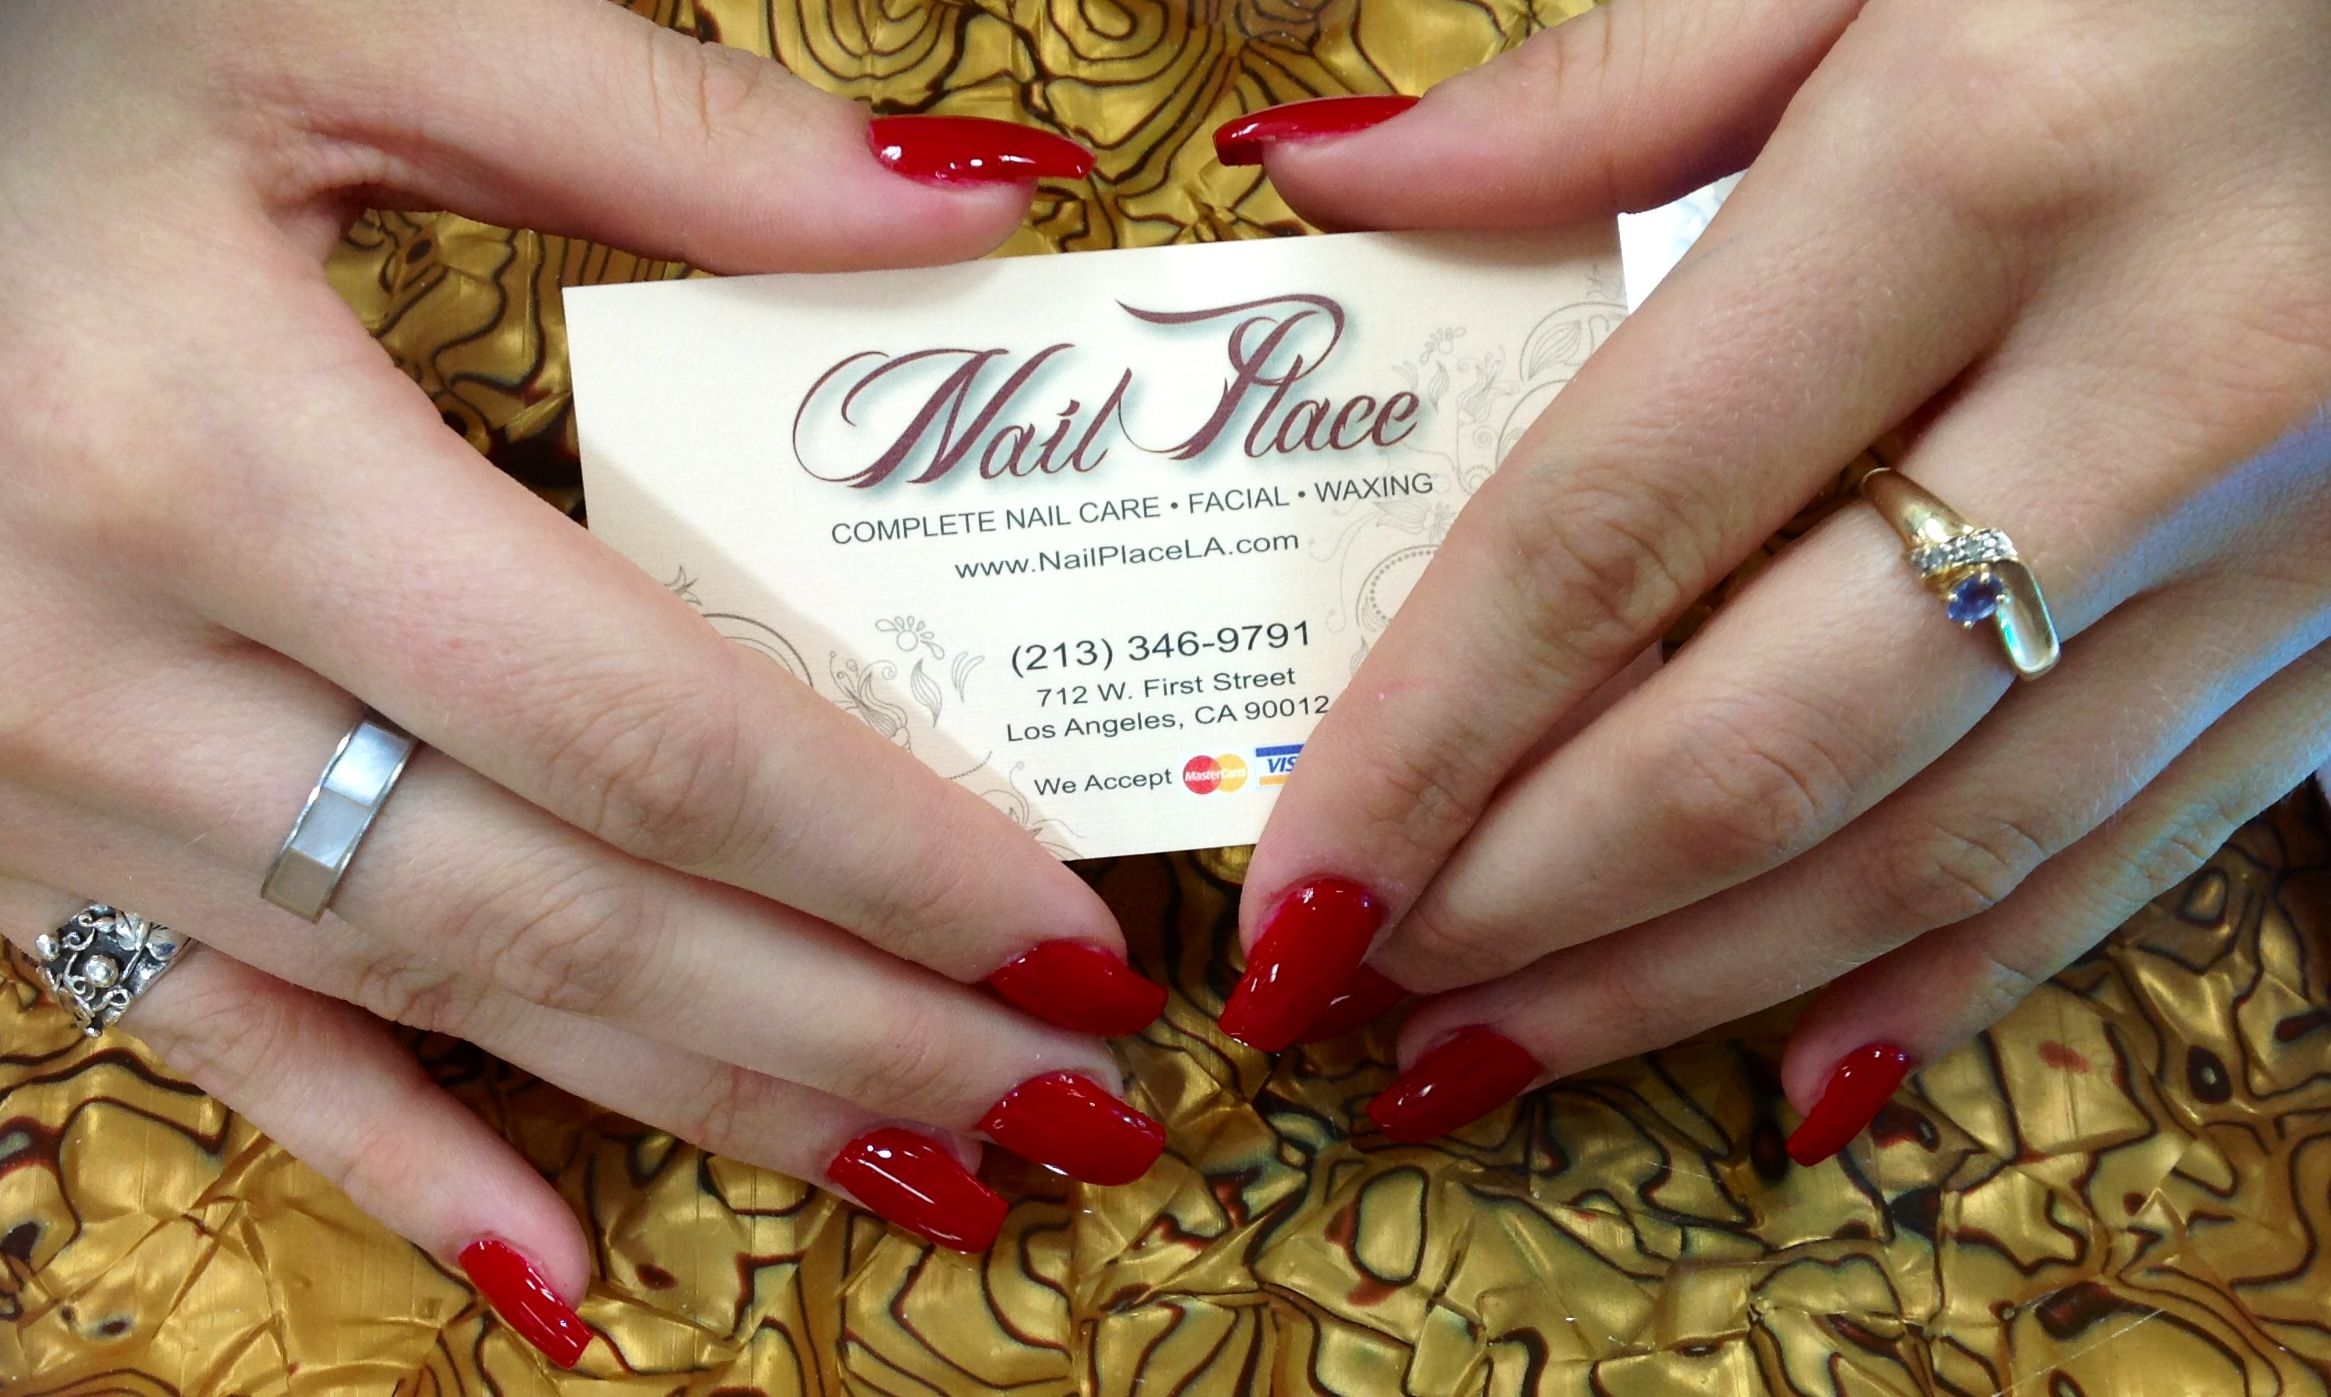 Nail Place - LA | Nail Salon | Downtown Los Angeles - 90012